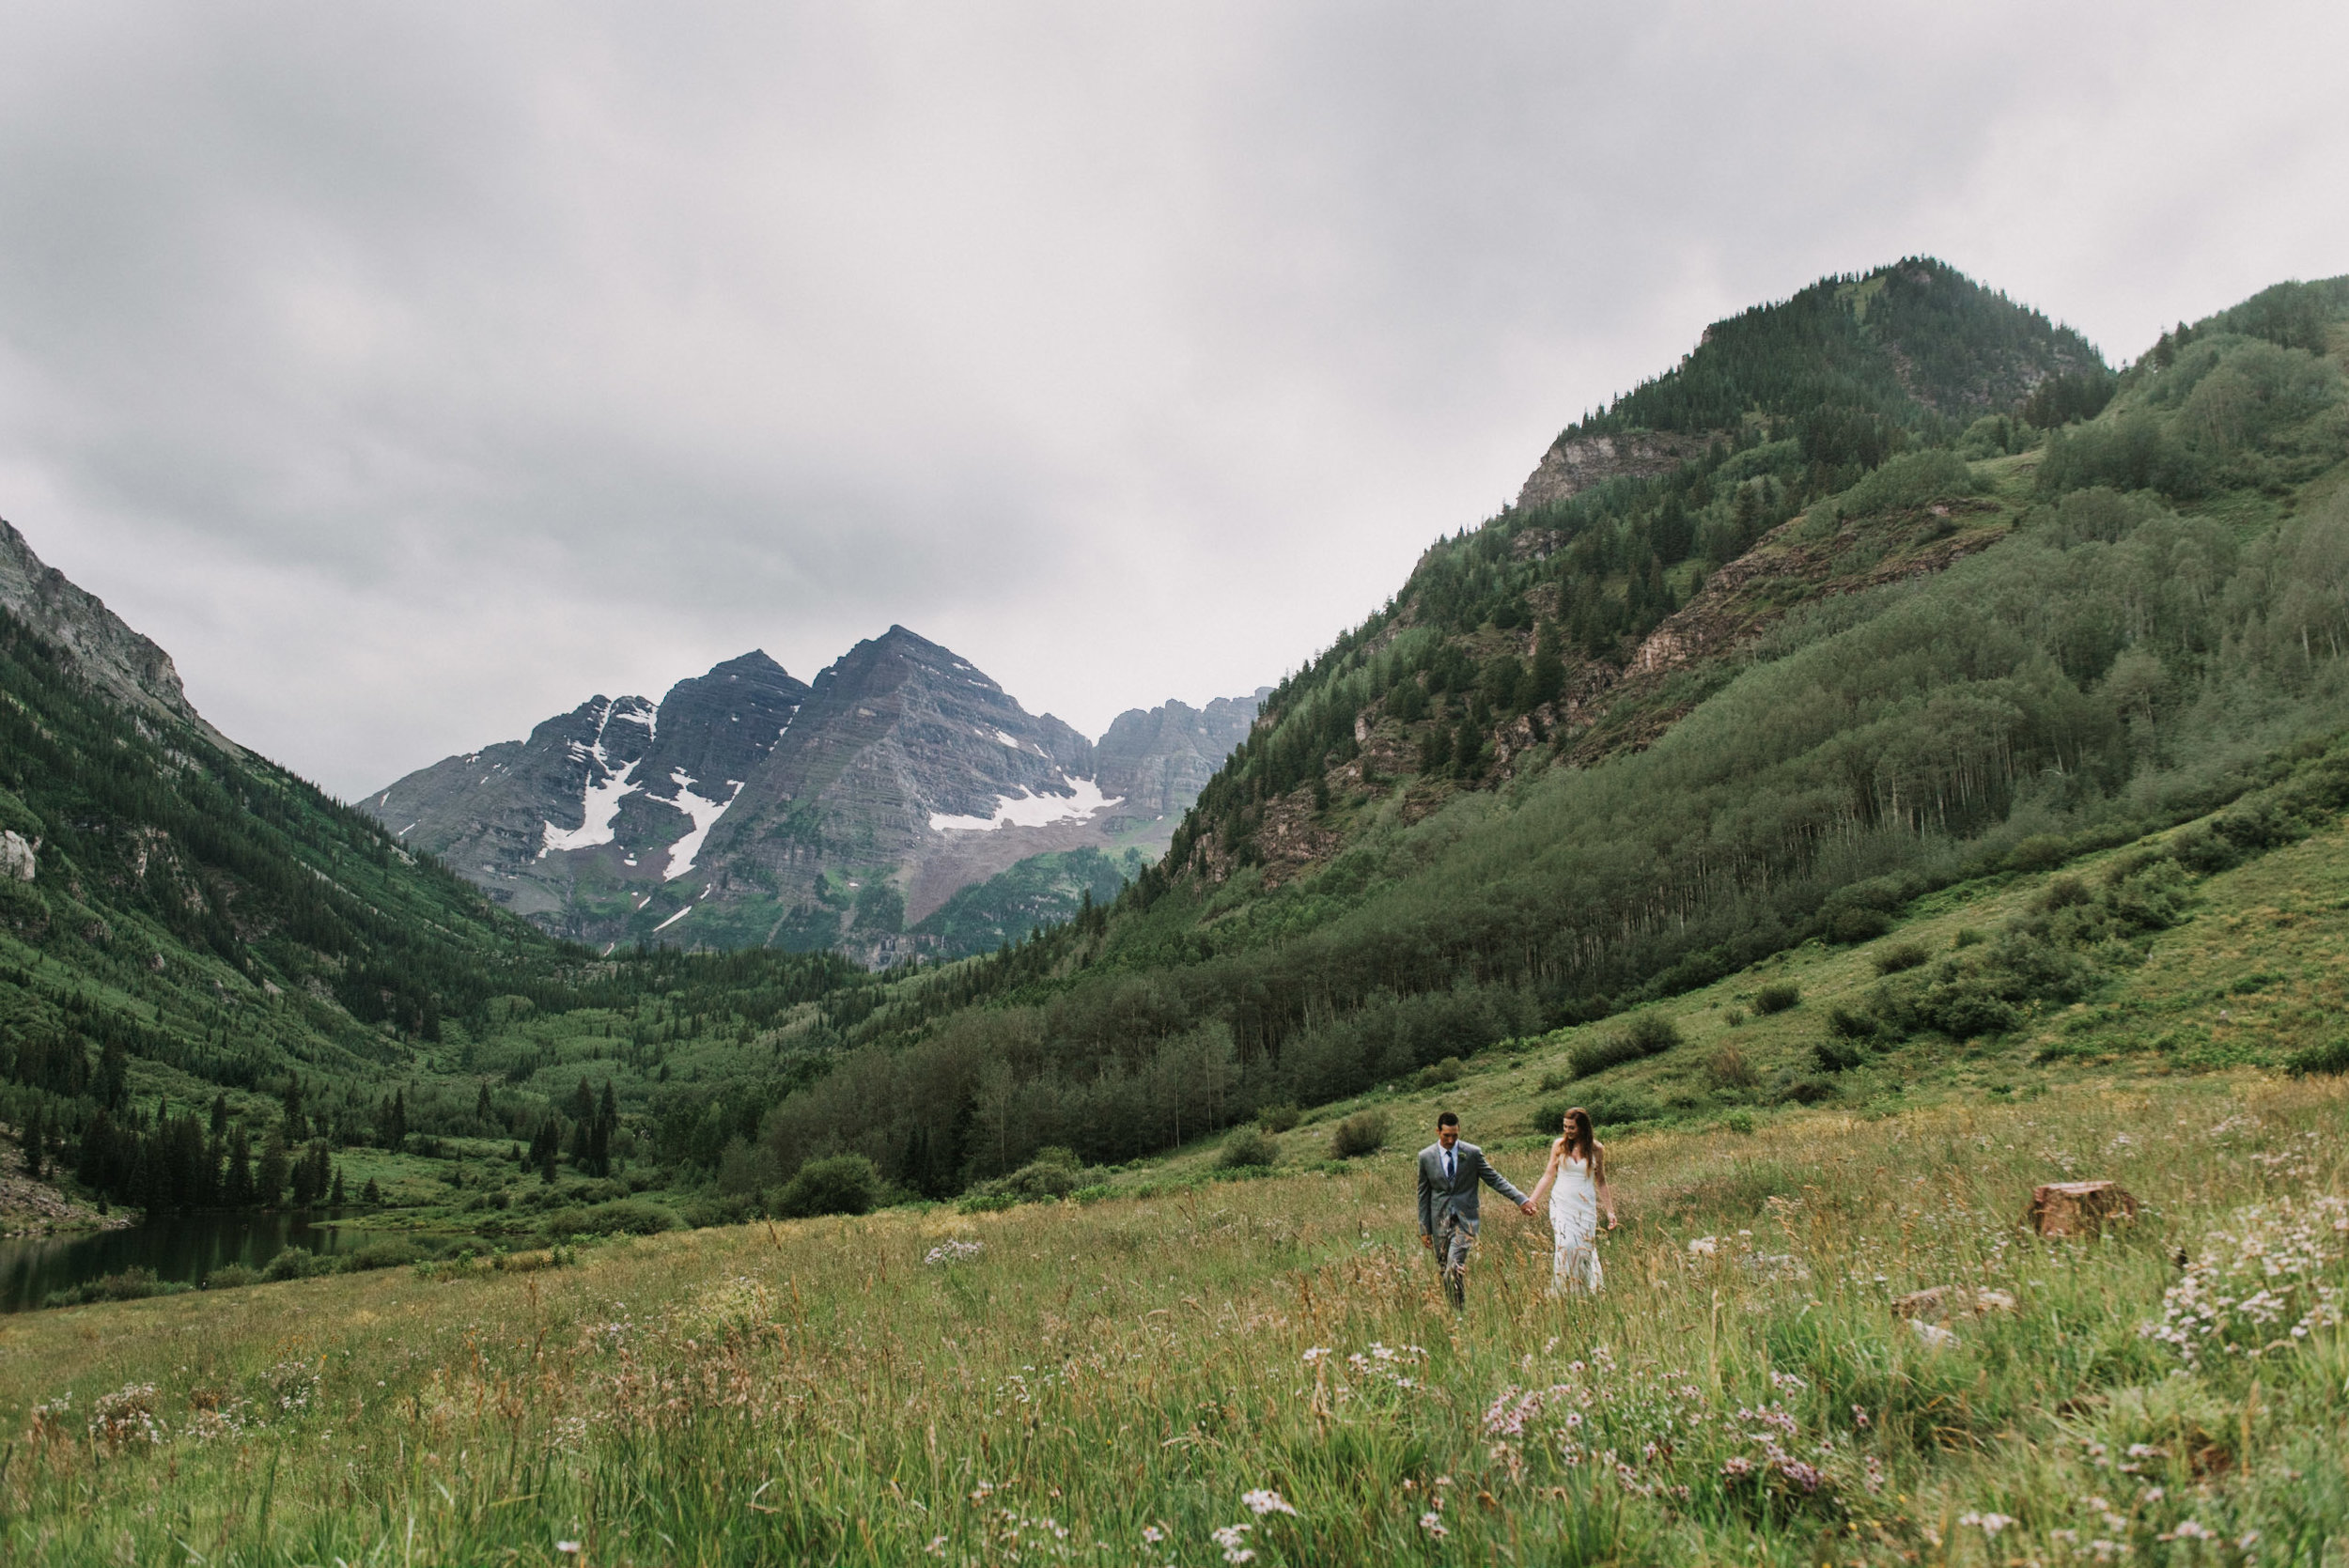 Heather and Darren walking through a field in front of the Maroon Bells.